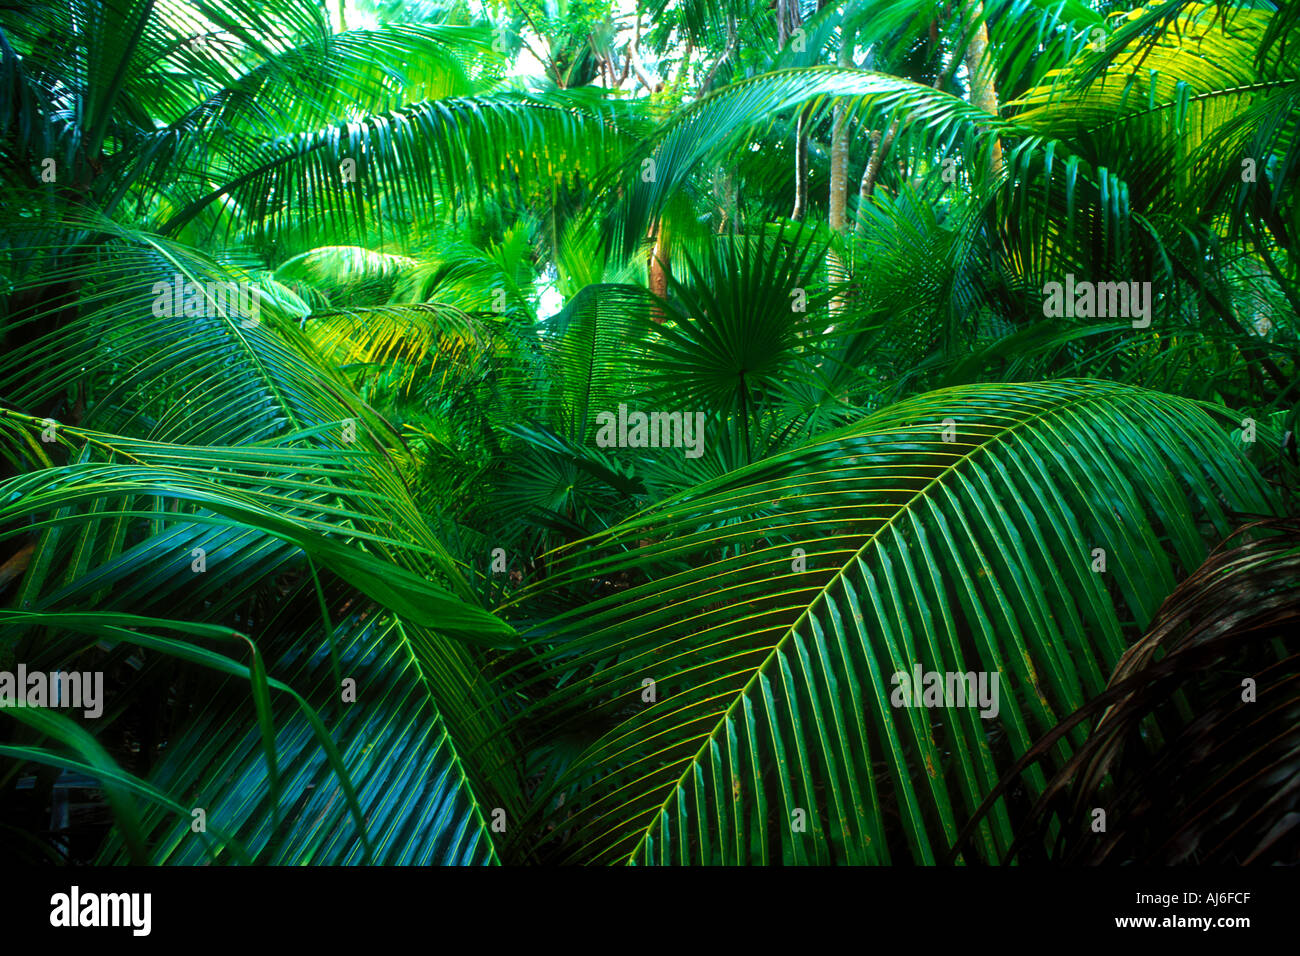 Dense coconut palm trees and tropical vegetation in Belize Caribbean Property Released Image - Stock Image